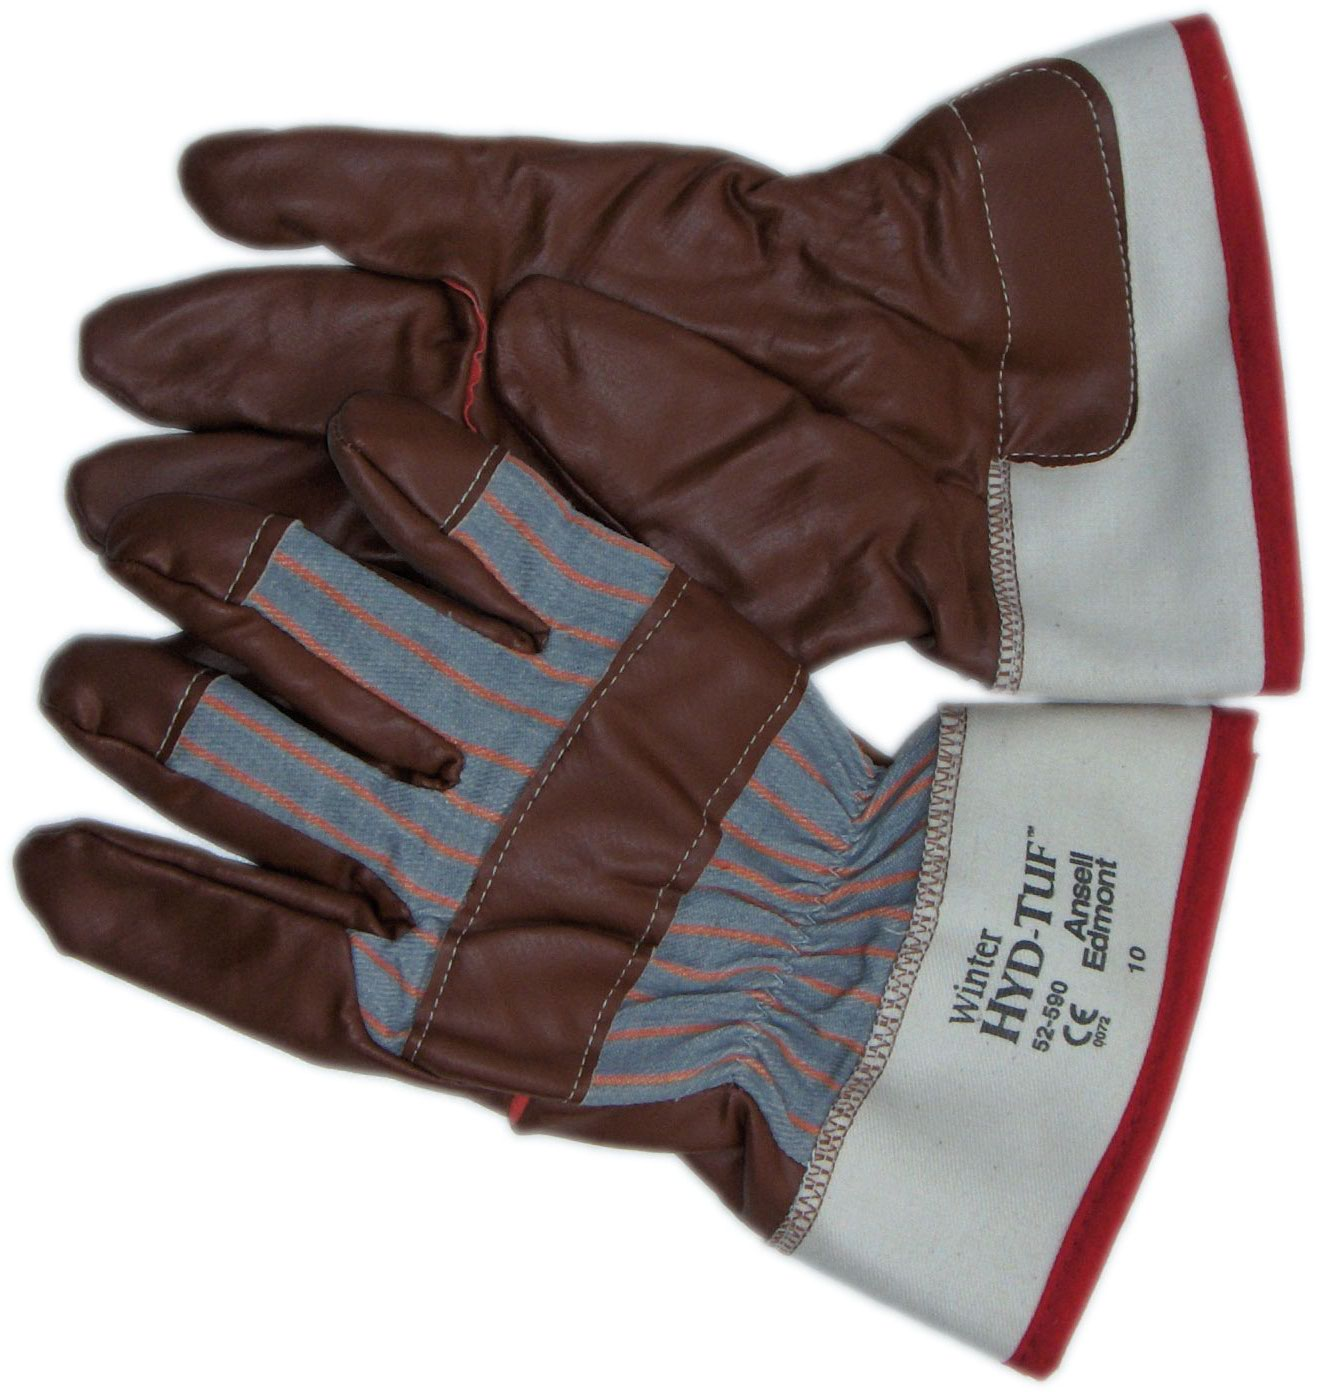 HYD-Tuff Lined Gloves